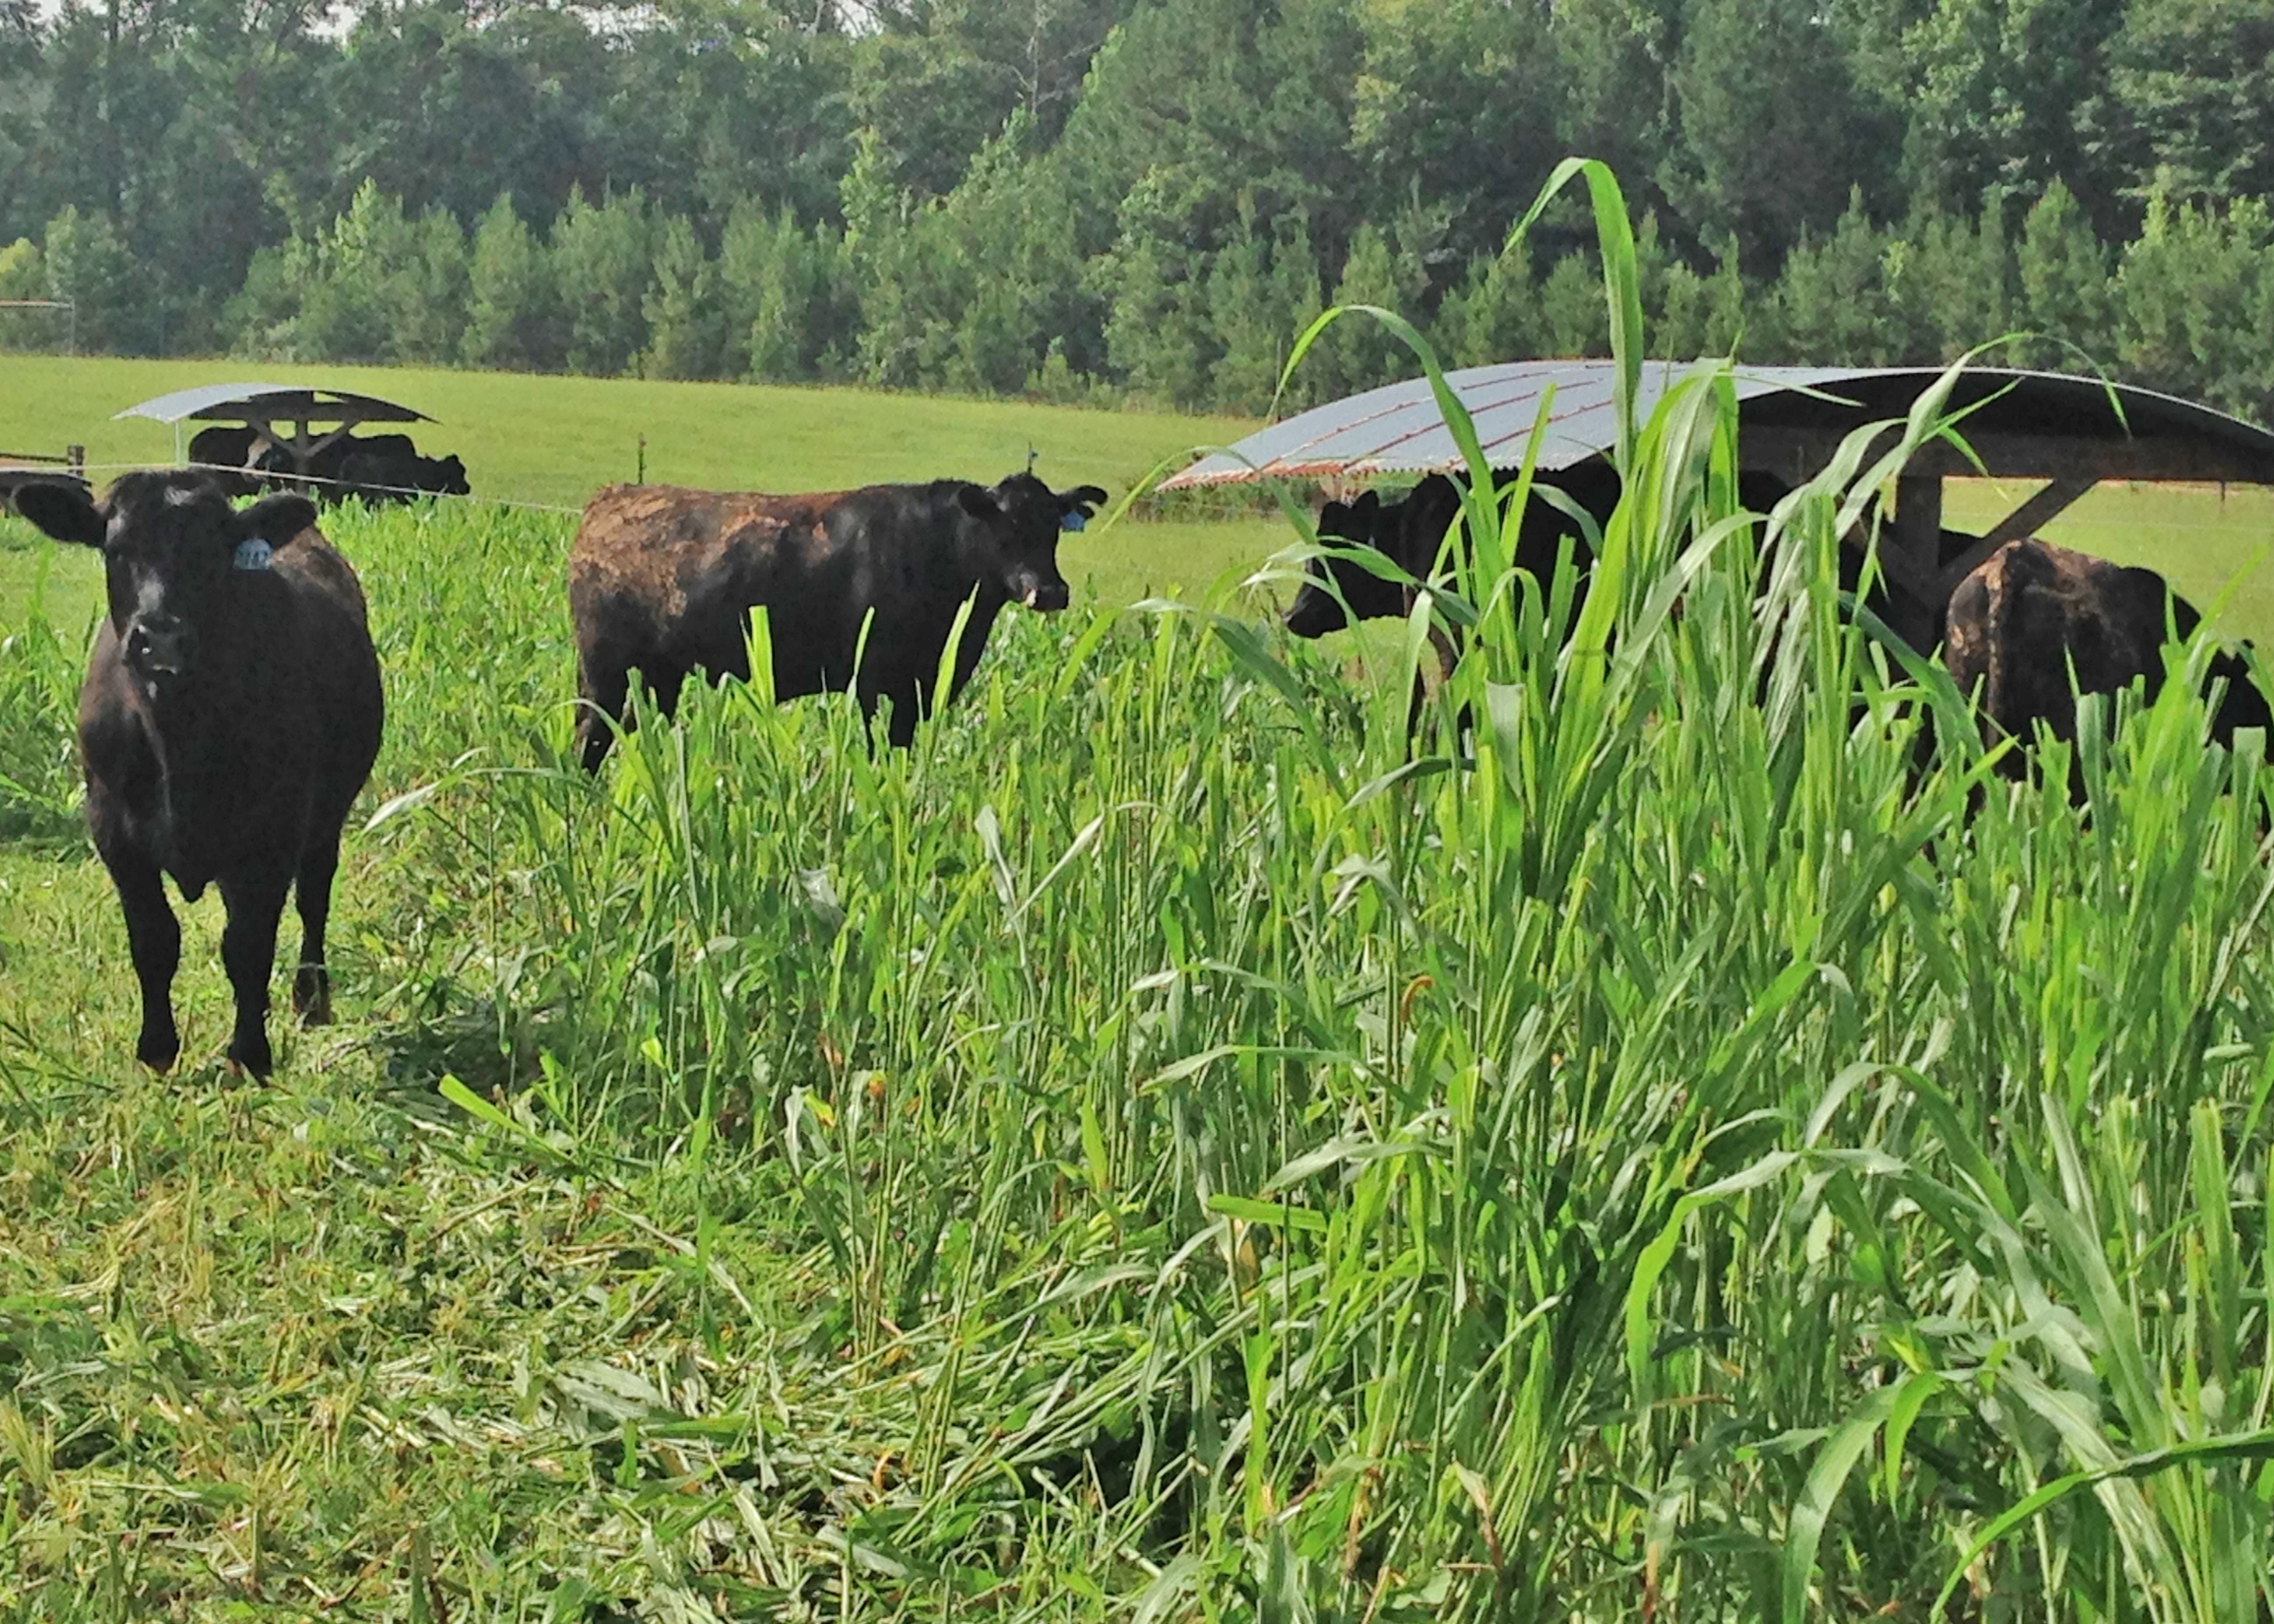 Steers graze on sorghum/sudangrass hybrid forage at the UGA Eatonton Beef Research Unit as part of a 2014 study on grass-finished beef forages.